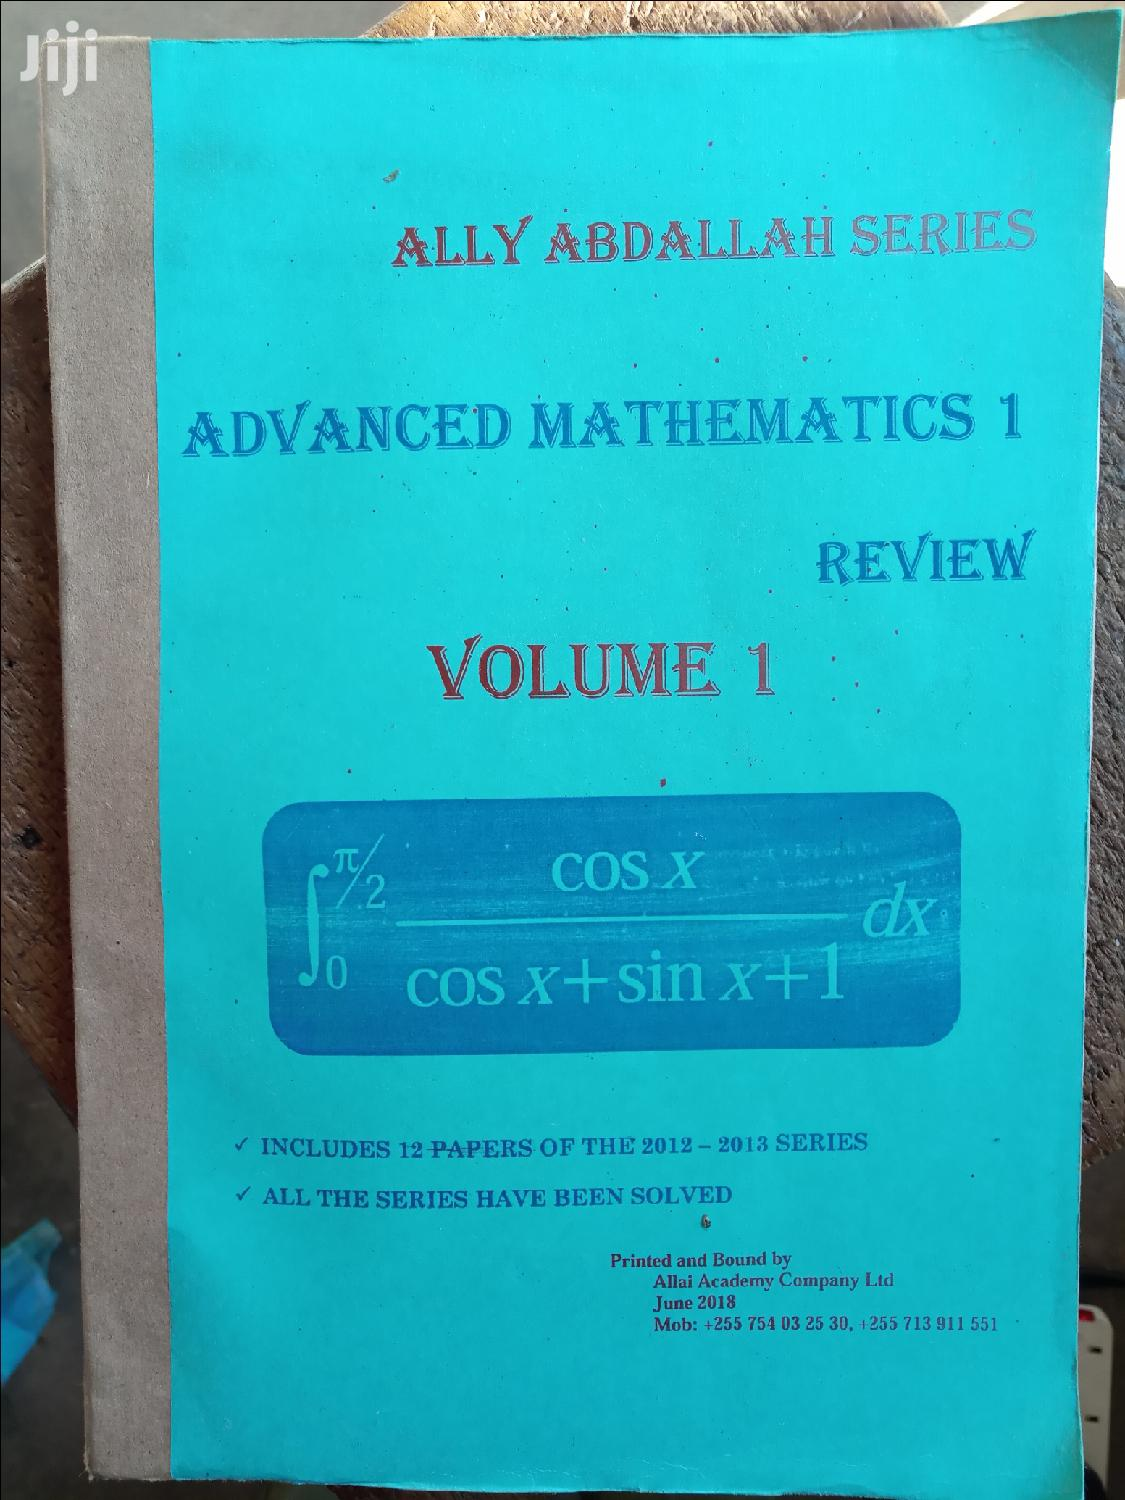 Mathematics Paper 1 Review By Ally Abdallah